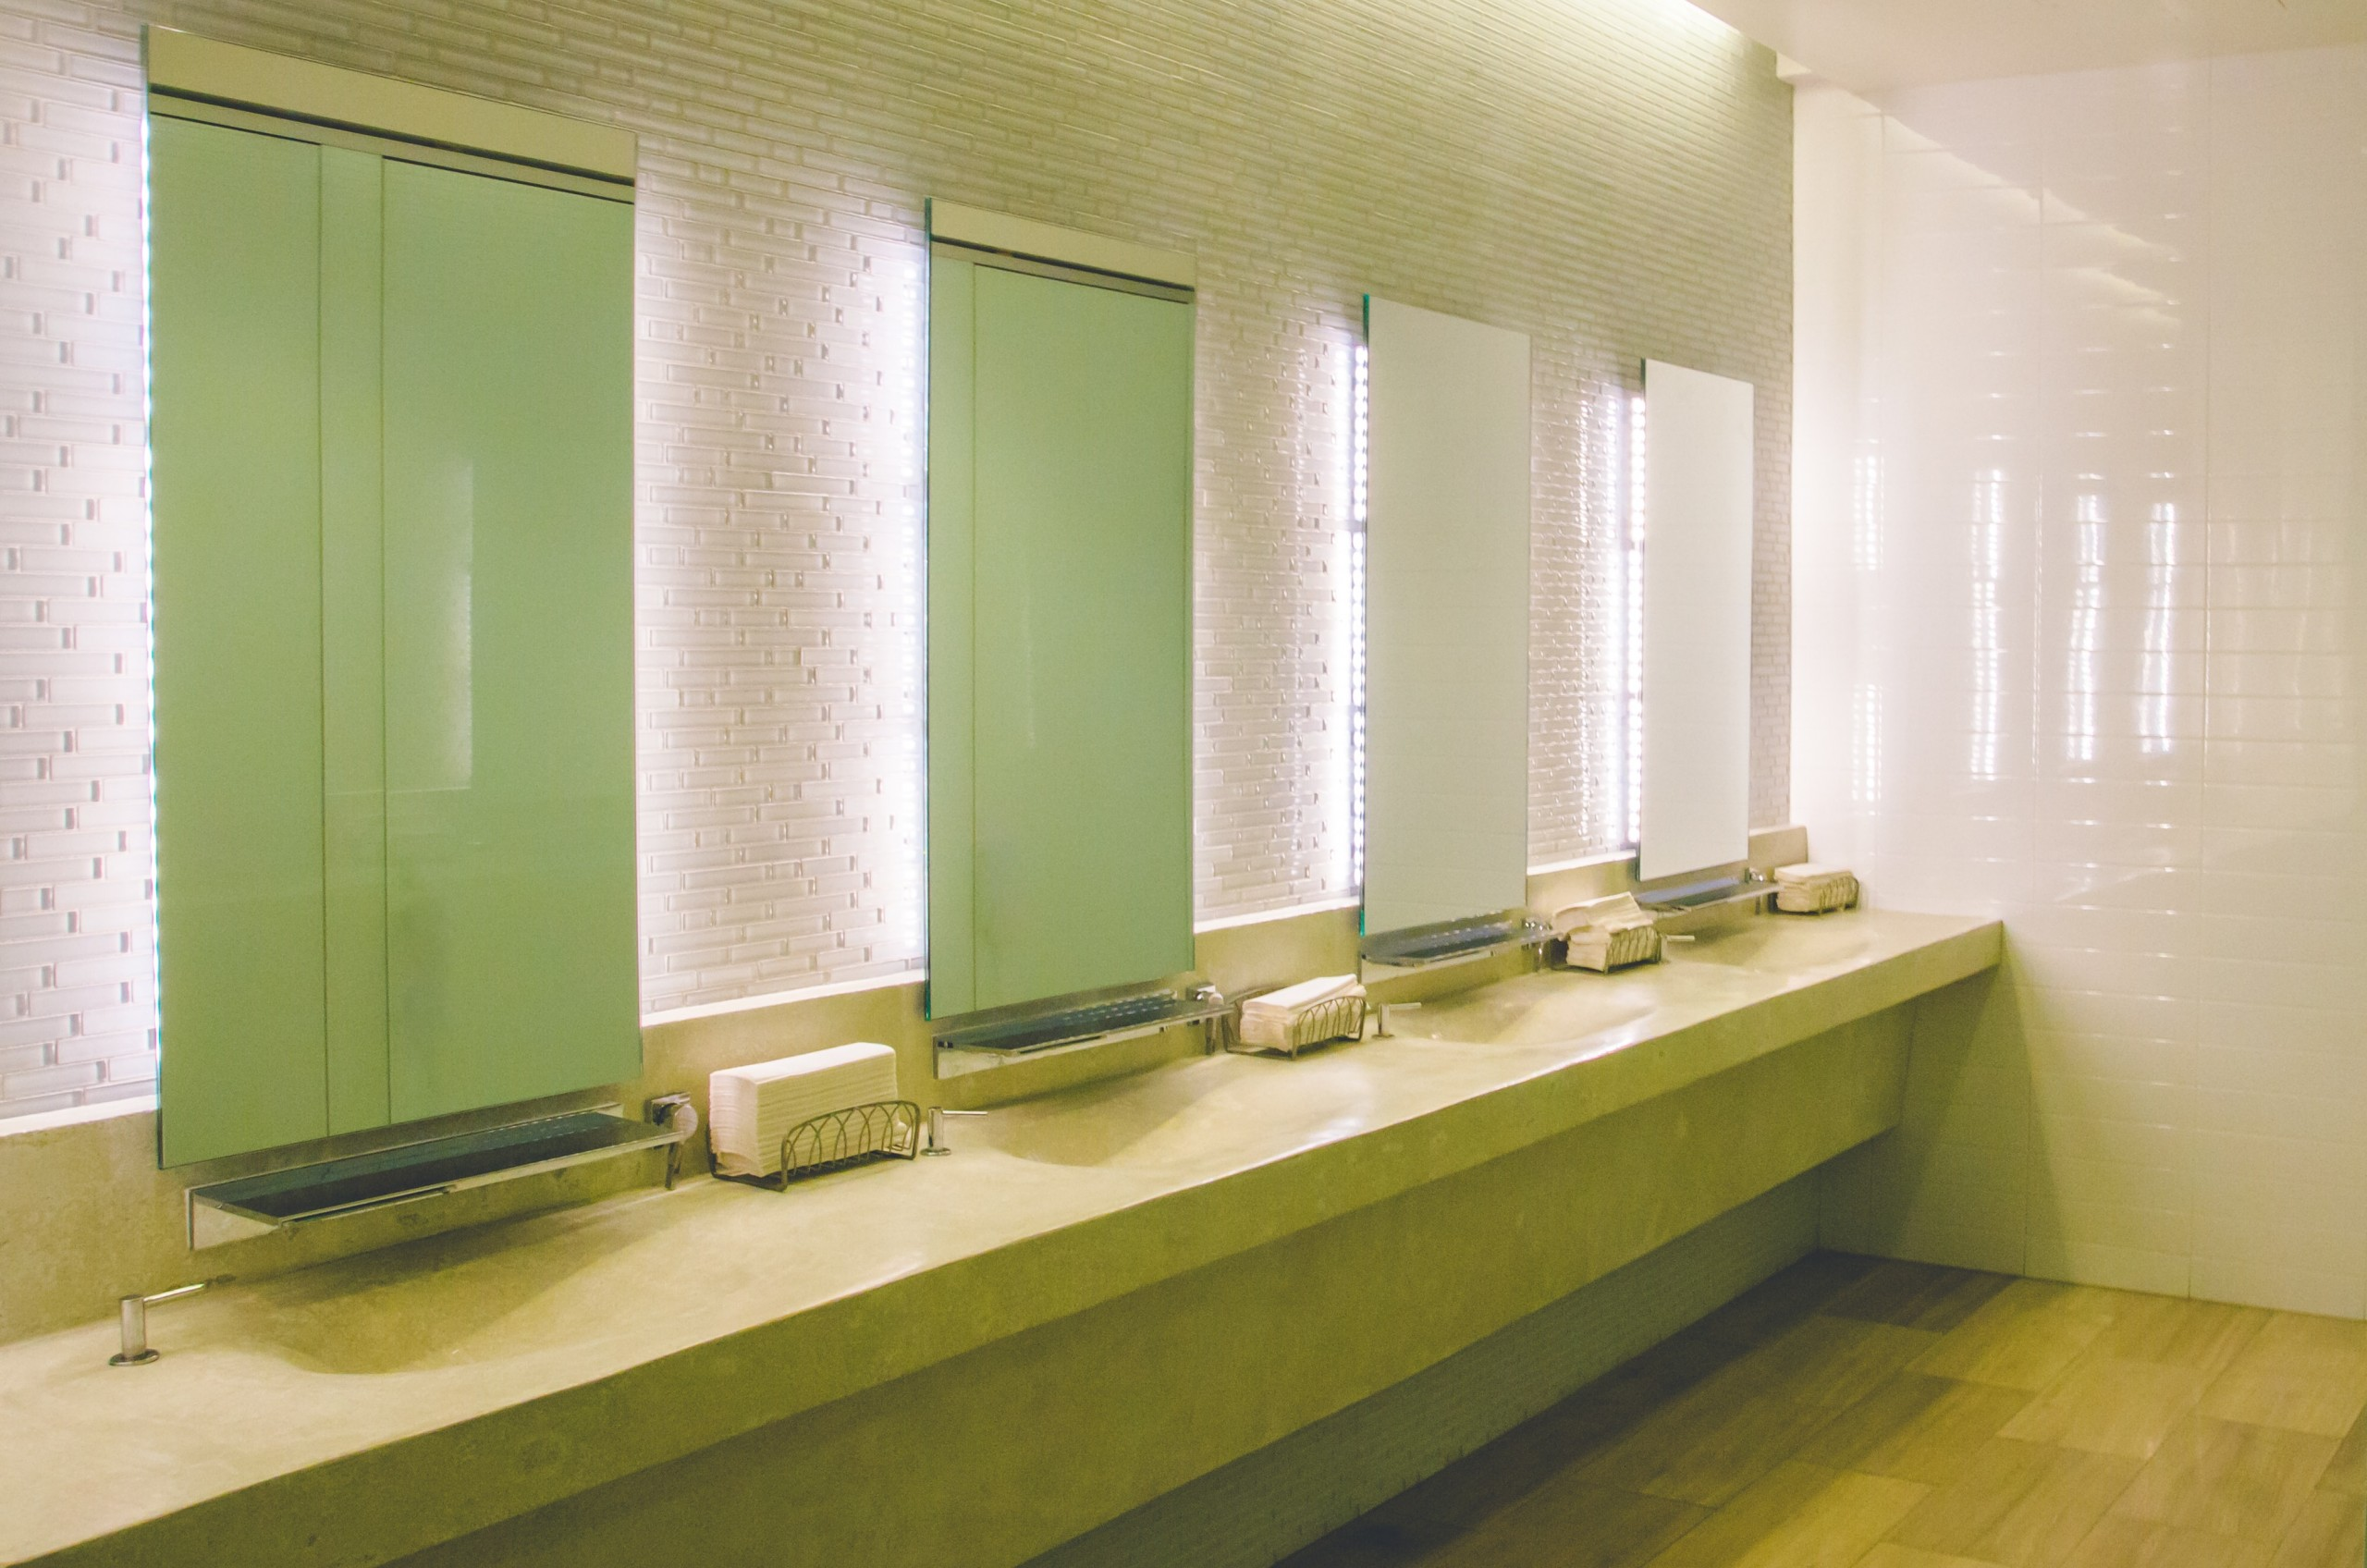 Interior photo of a church washroom showing solid surface countertops, white tile walls and backlit mirrors; light grey neutral colour scheme with tile floor.